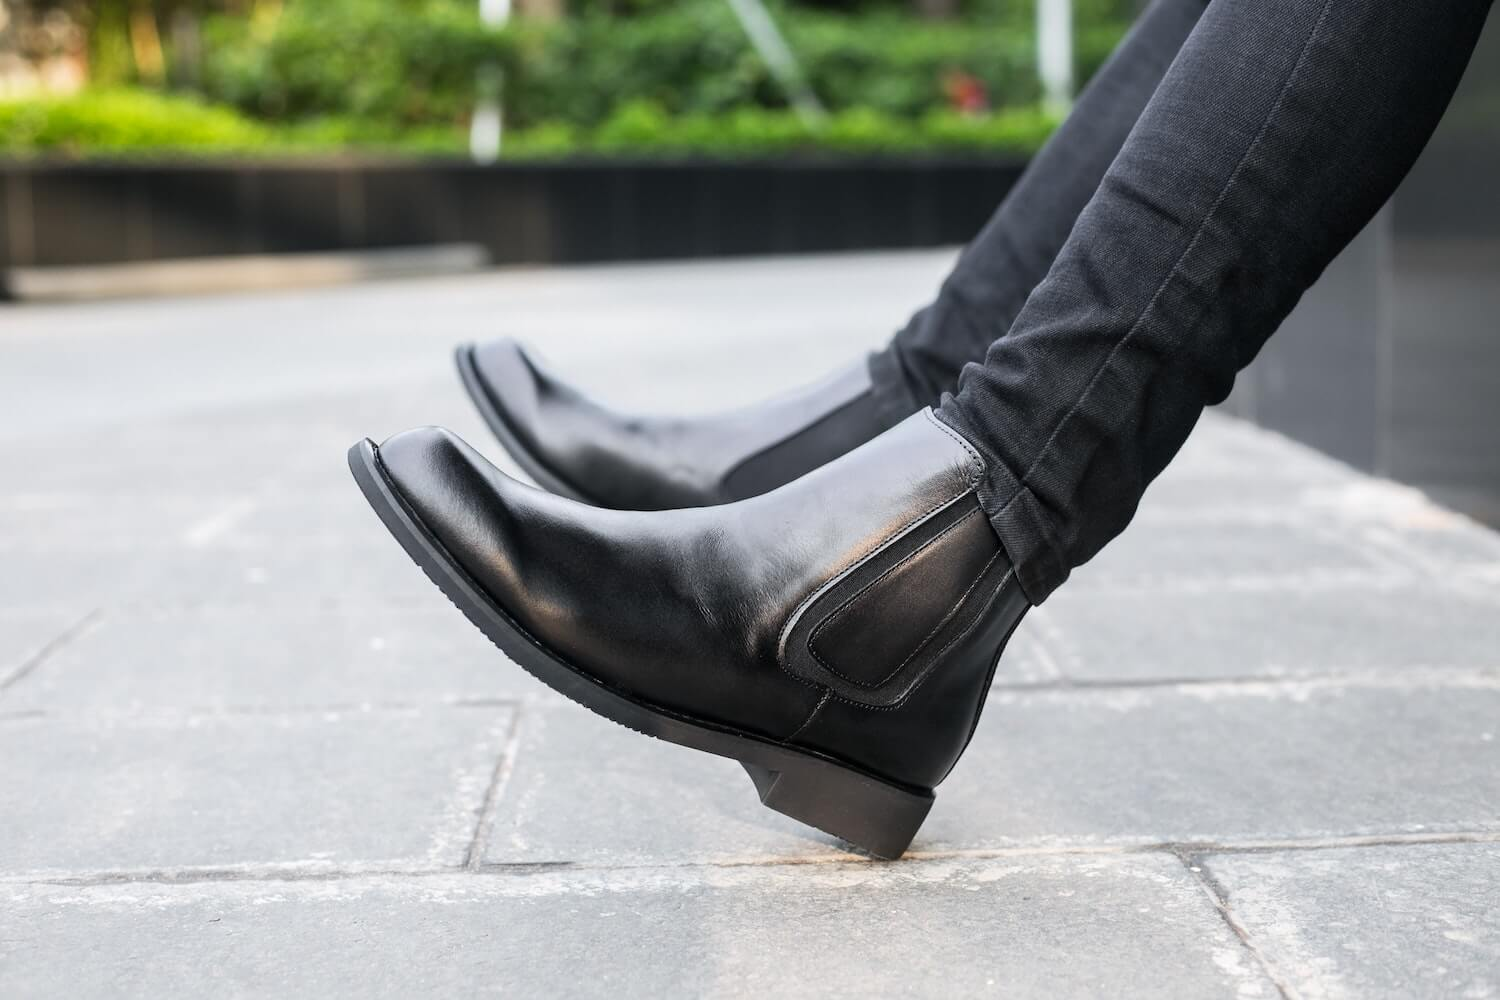 Wearing Black Chelsea Boots and Skinny Black Jeans in Courtyard